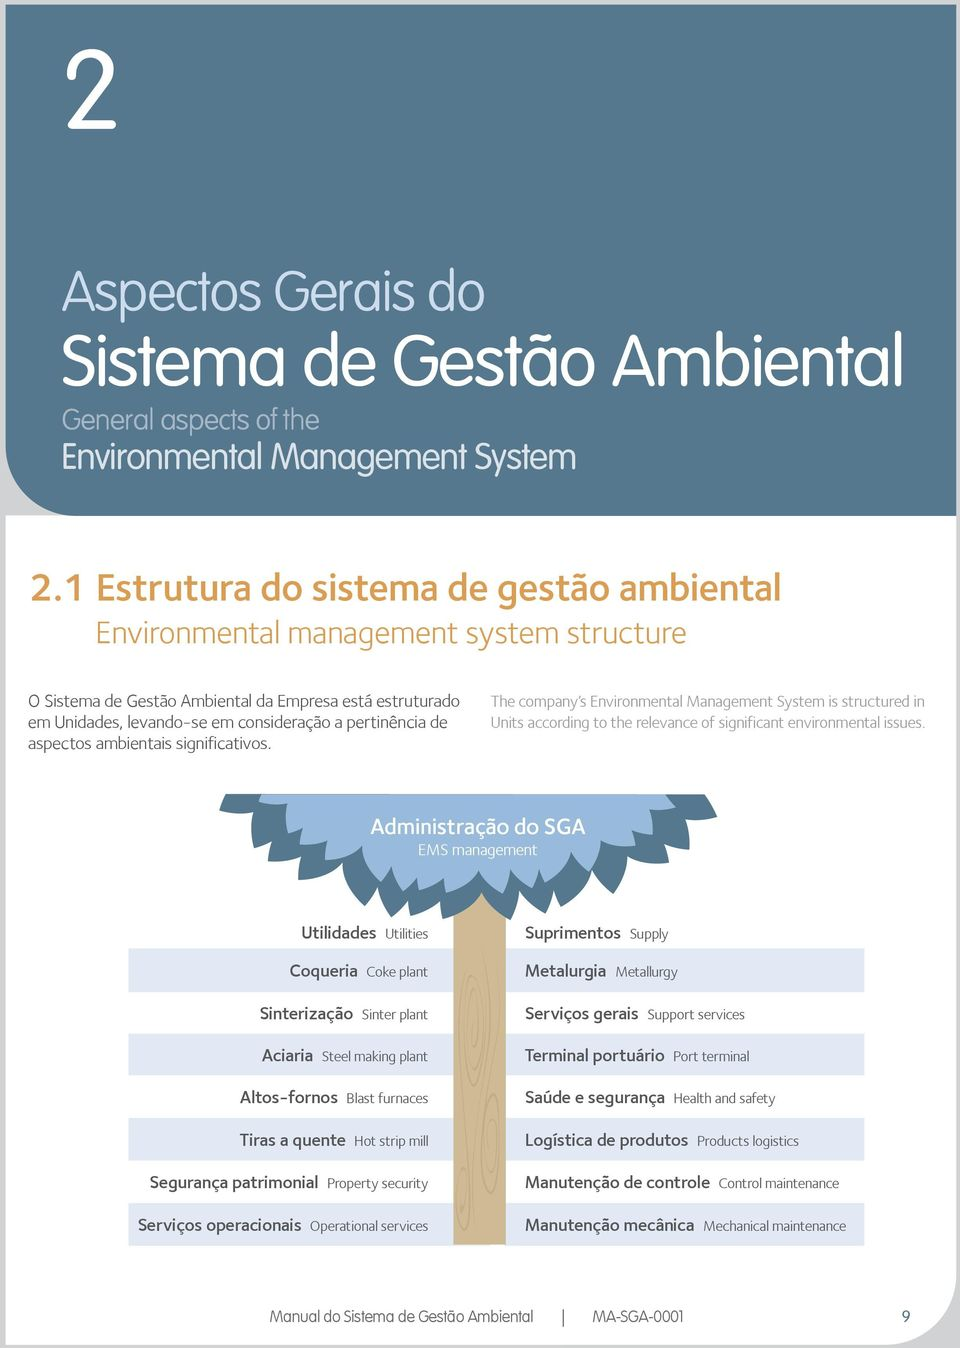 aspectos ambientais significativos. The company s Environmental Management System is structured in Units according to the relevance of significant environmental issues.